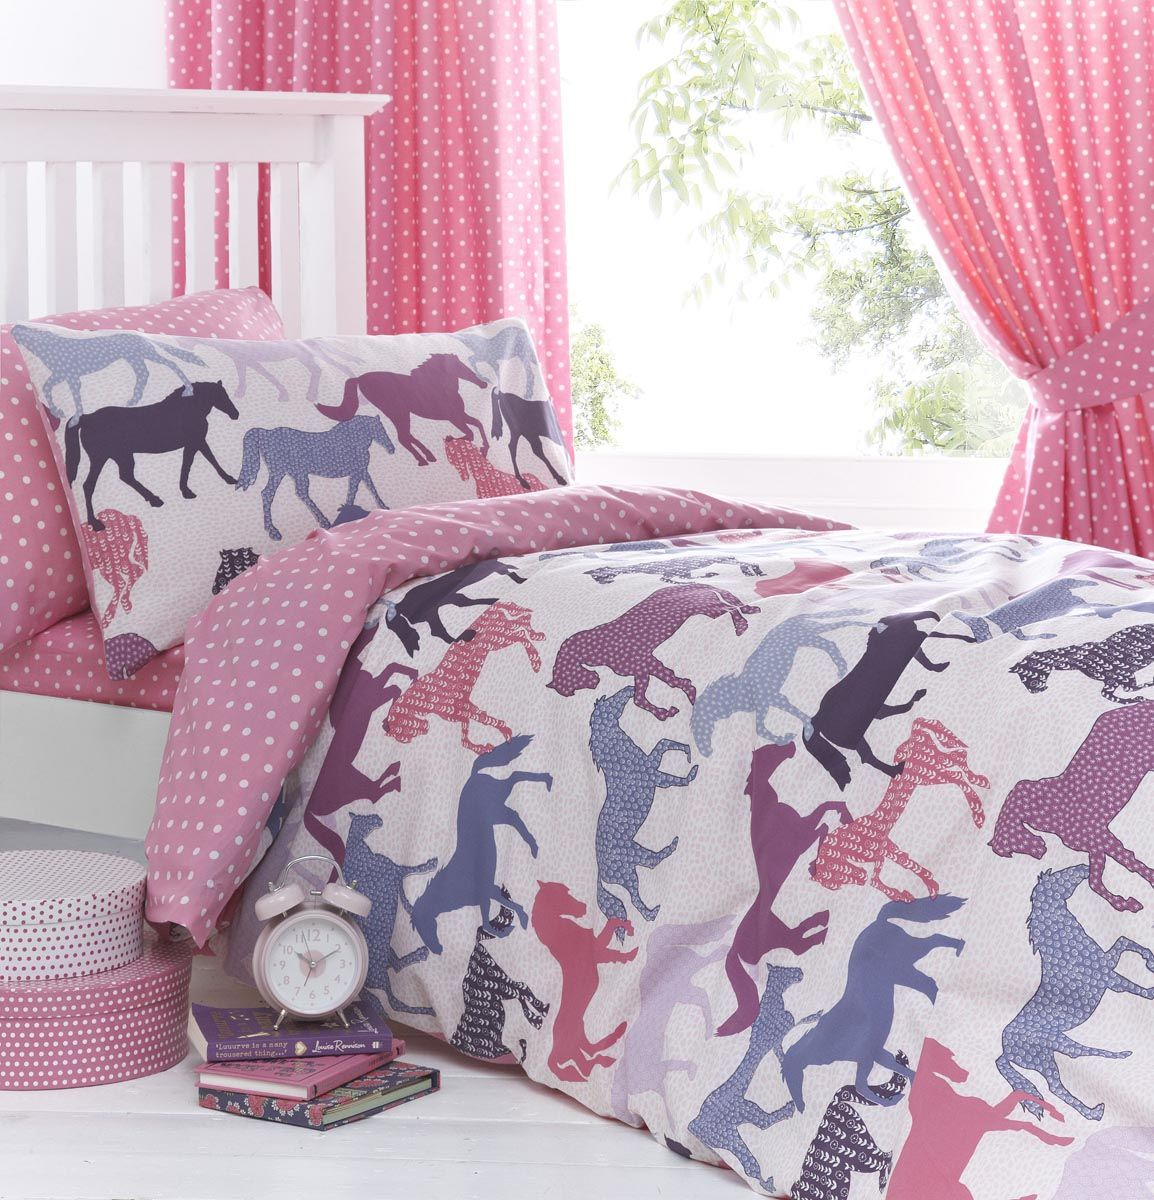 Gallop pink girls horse bedding duvet cover set sheet for Bedroom curtains and bedding